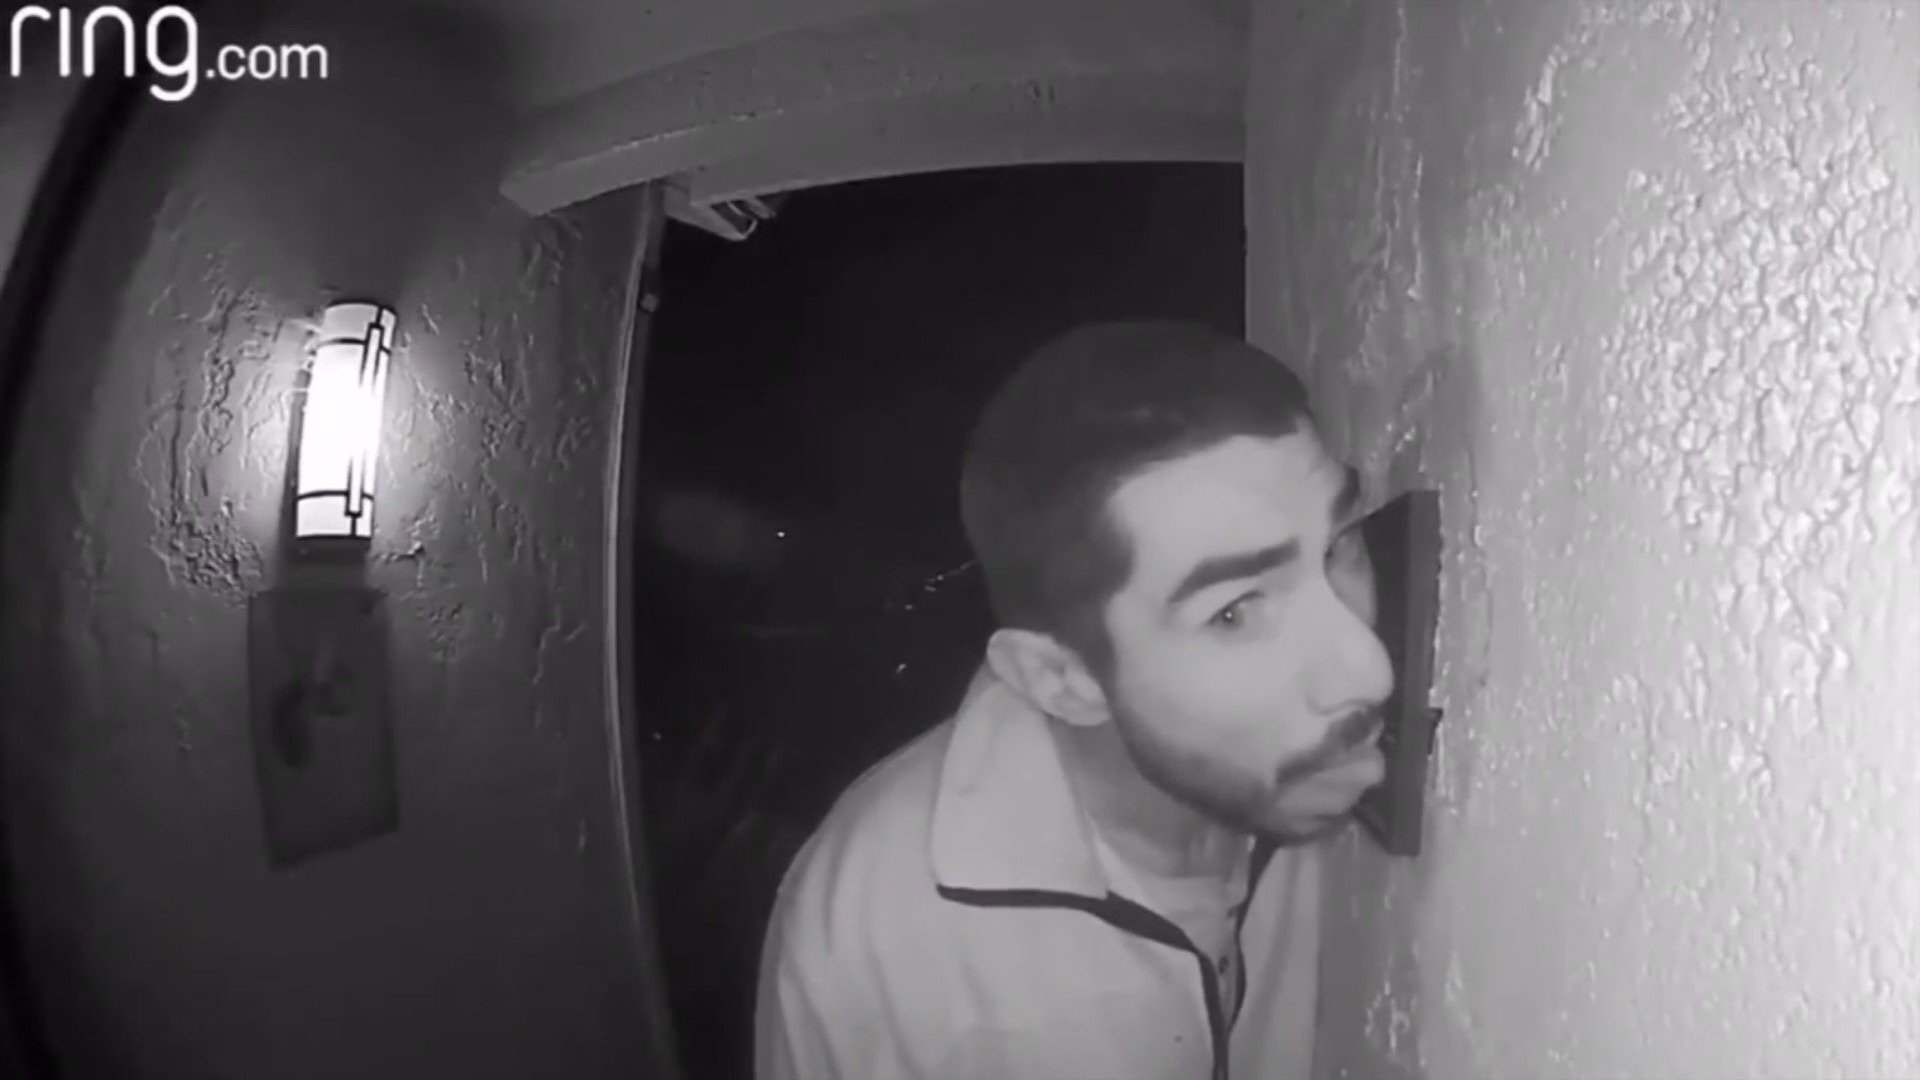 VIDEO: Police searching for man caught on camera licking family's doorbell